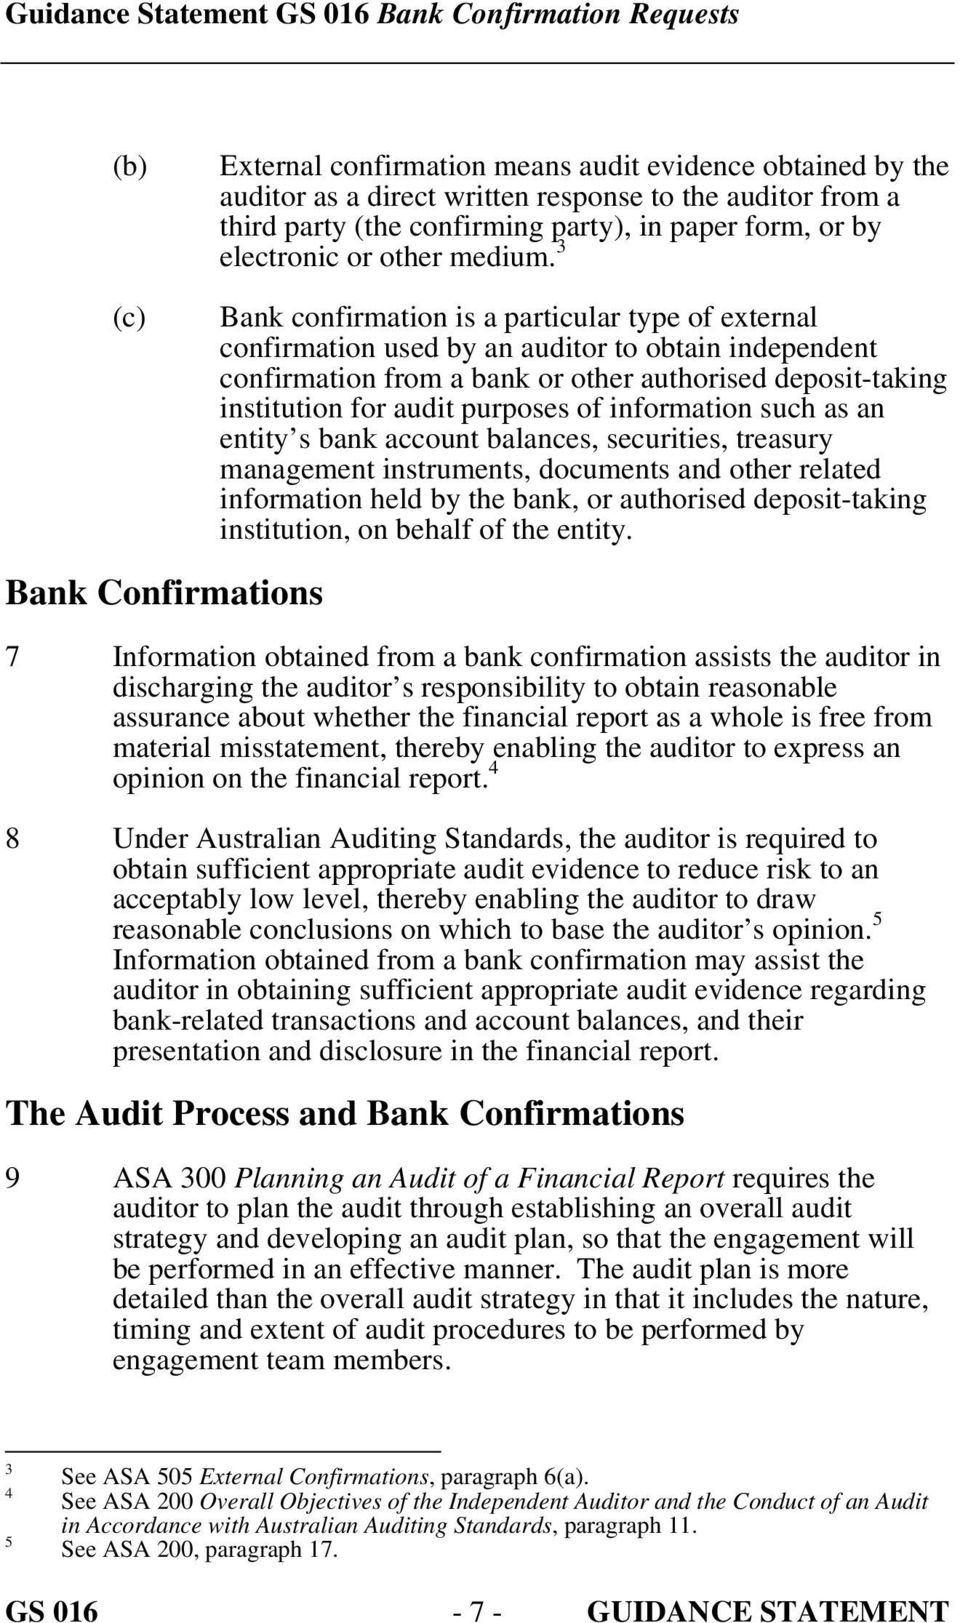 3 (c) Bank Confirmations Bank confirmation is a particular type of external confirmation used by an auditor to obtain independent confirmation from a bank or other authorised deposit-taking